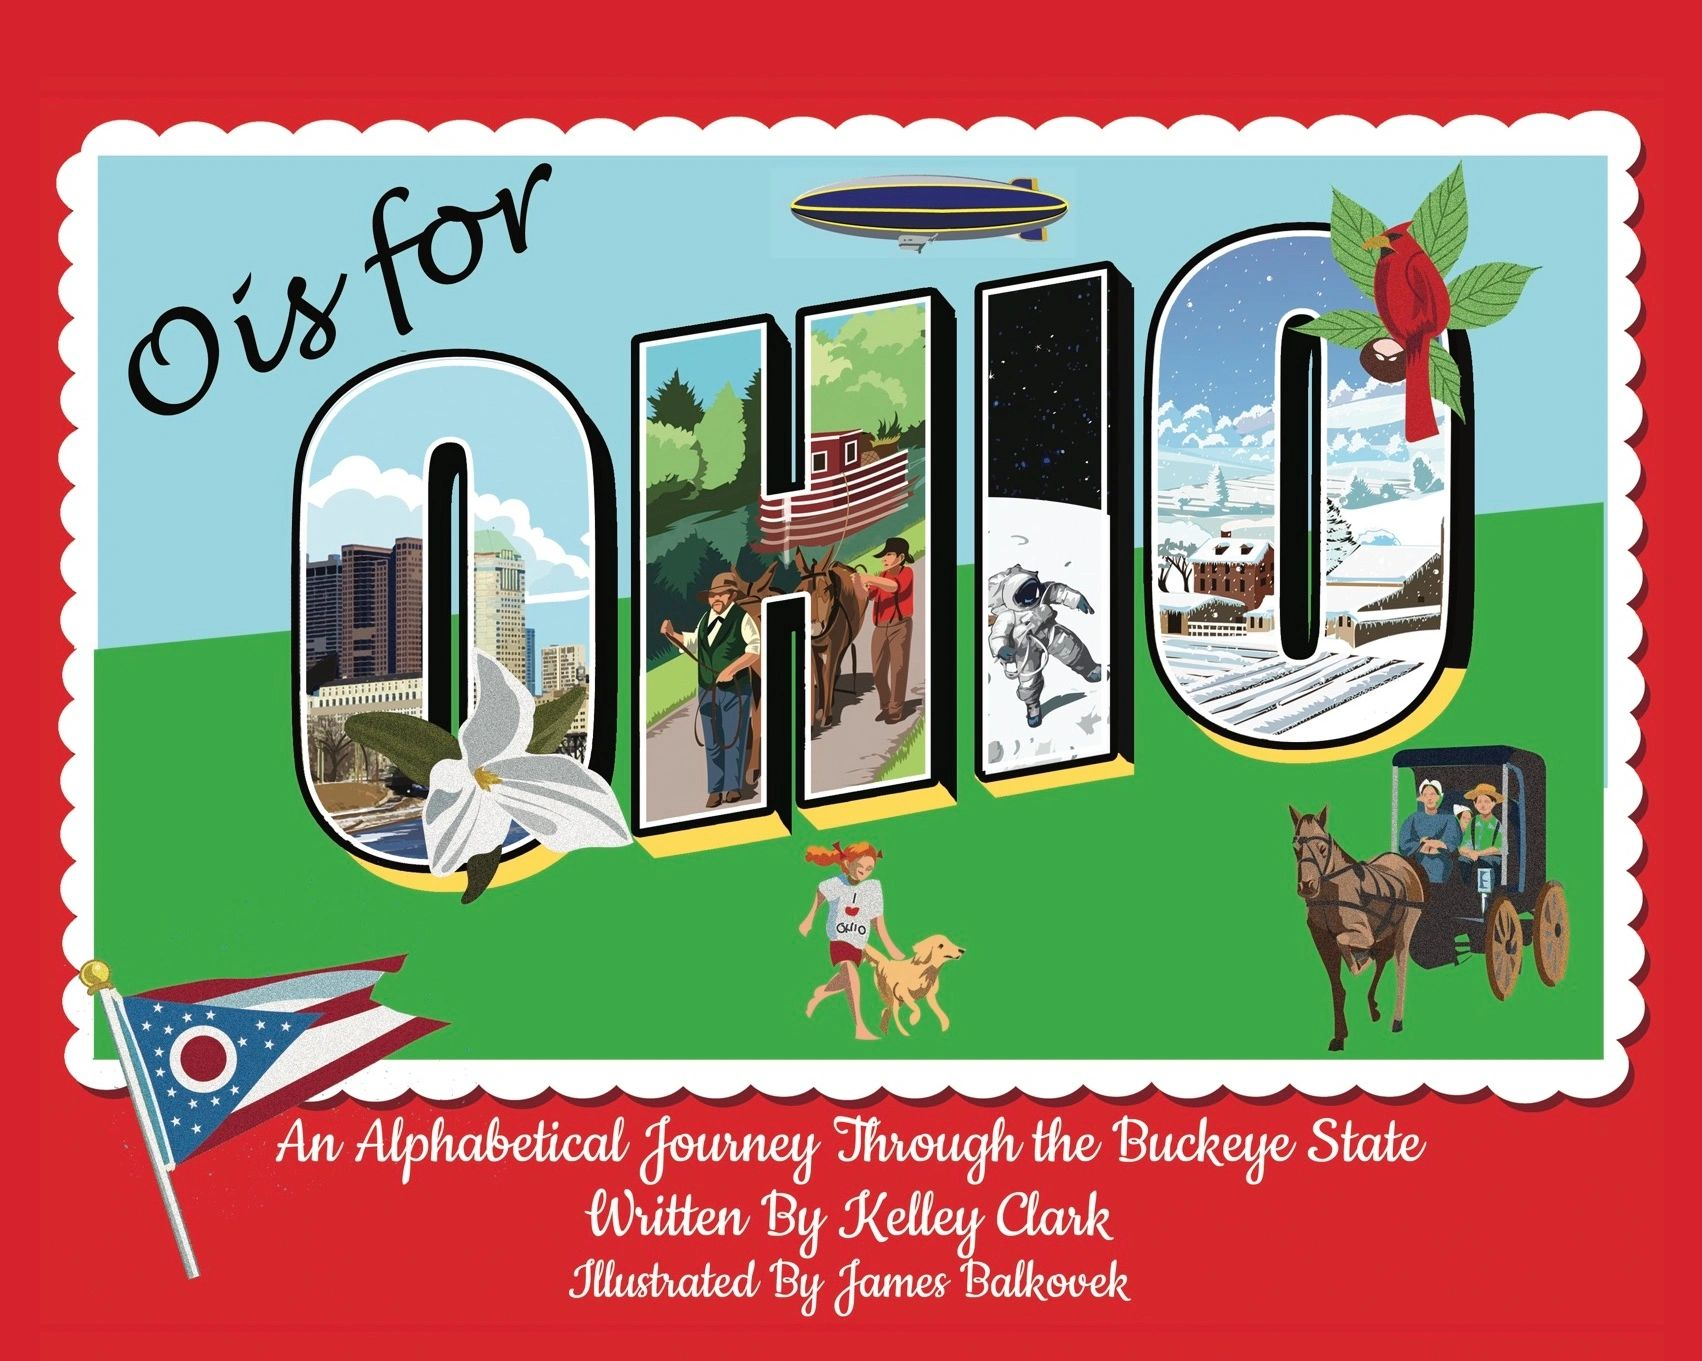 A children's book that packed with stories for kids about the amazing Buckeye State.